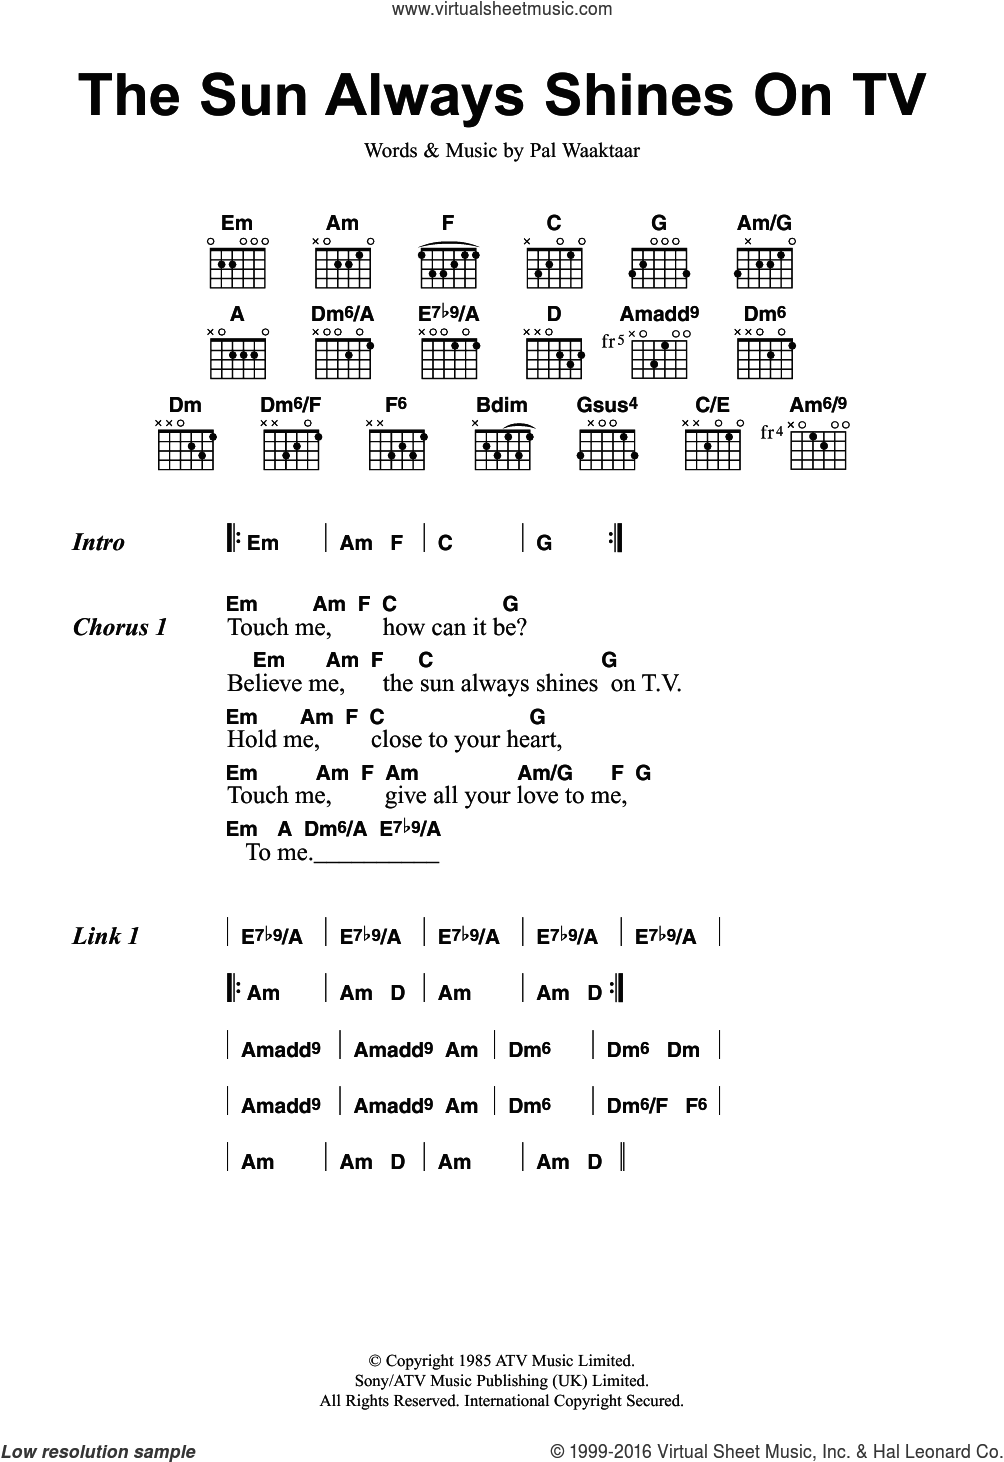 The Sun Always Shines On TV sheet music for guitar (chords) by a-ha and Pal Waaktaar, intermediate skill level